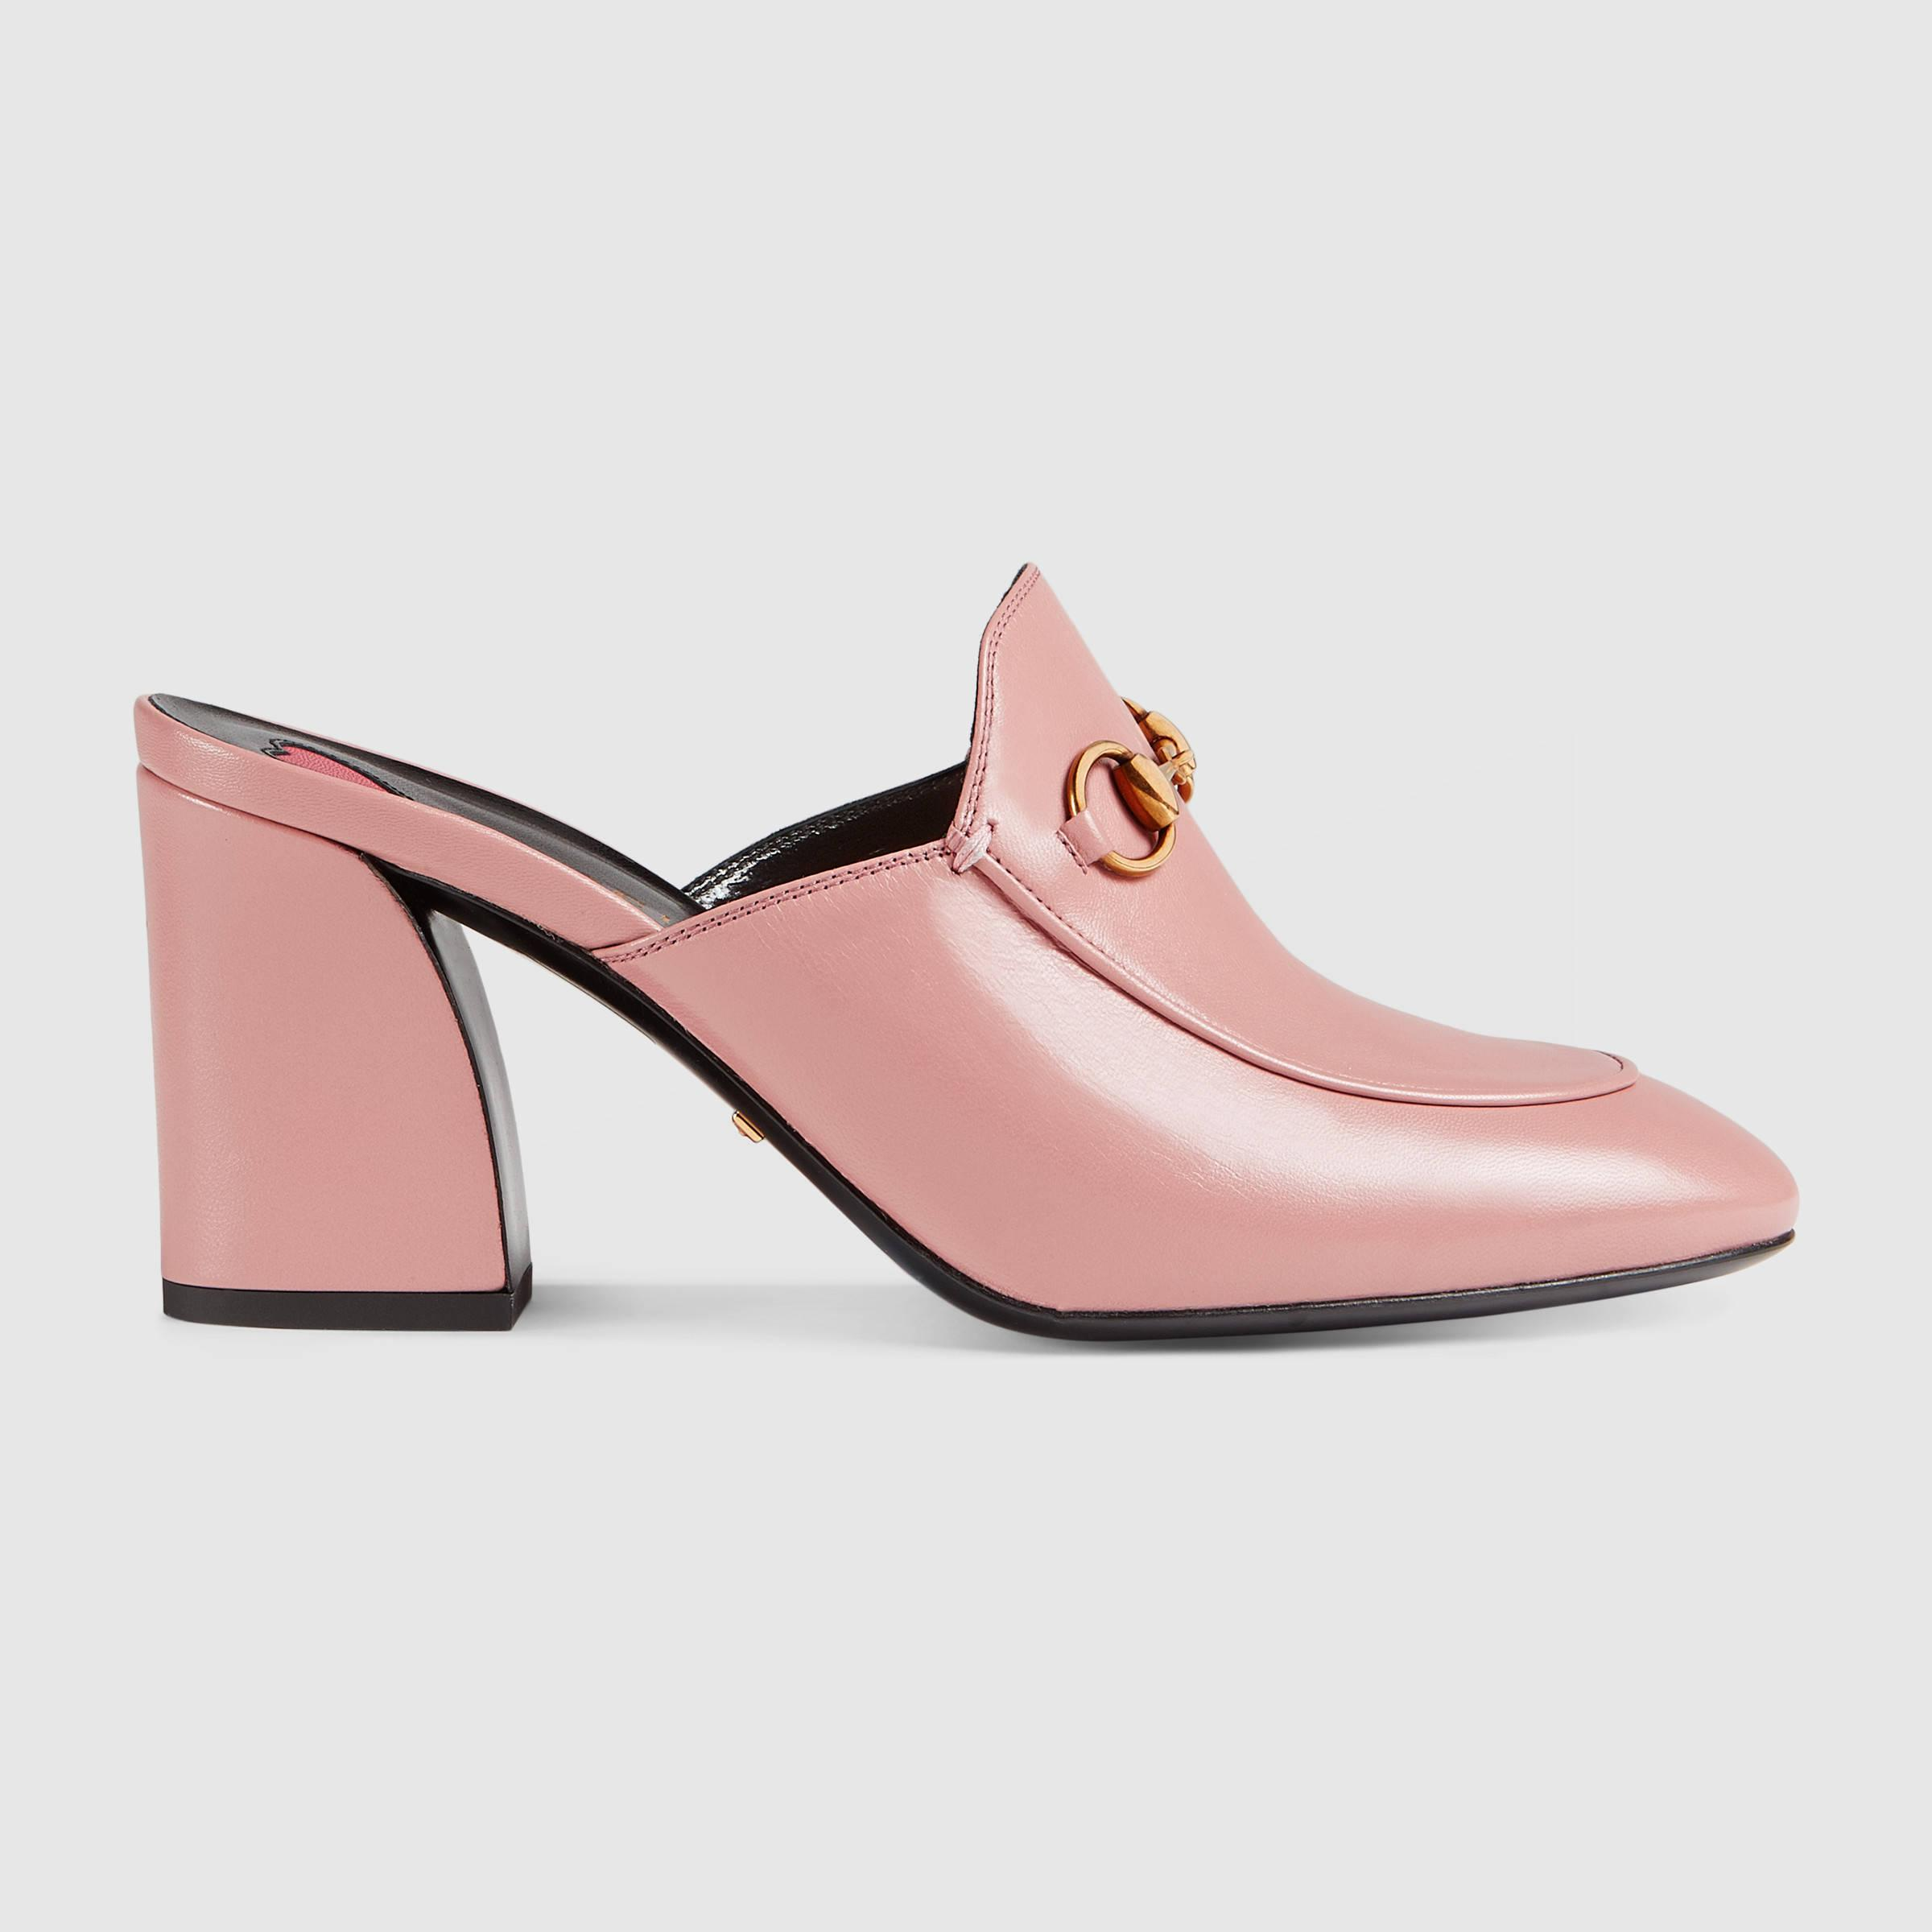 Womens lined leather gloves - Polished Appeal With Gucci S Pink Princetown Mules Made From Leather